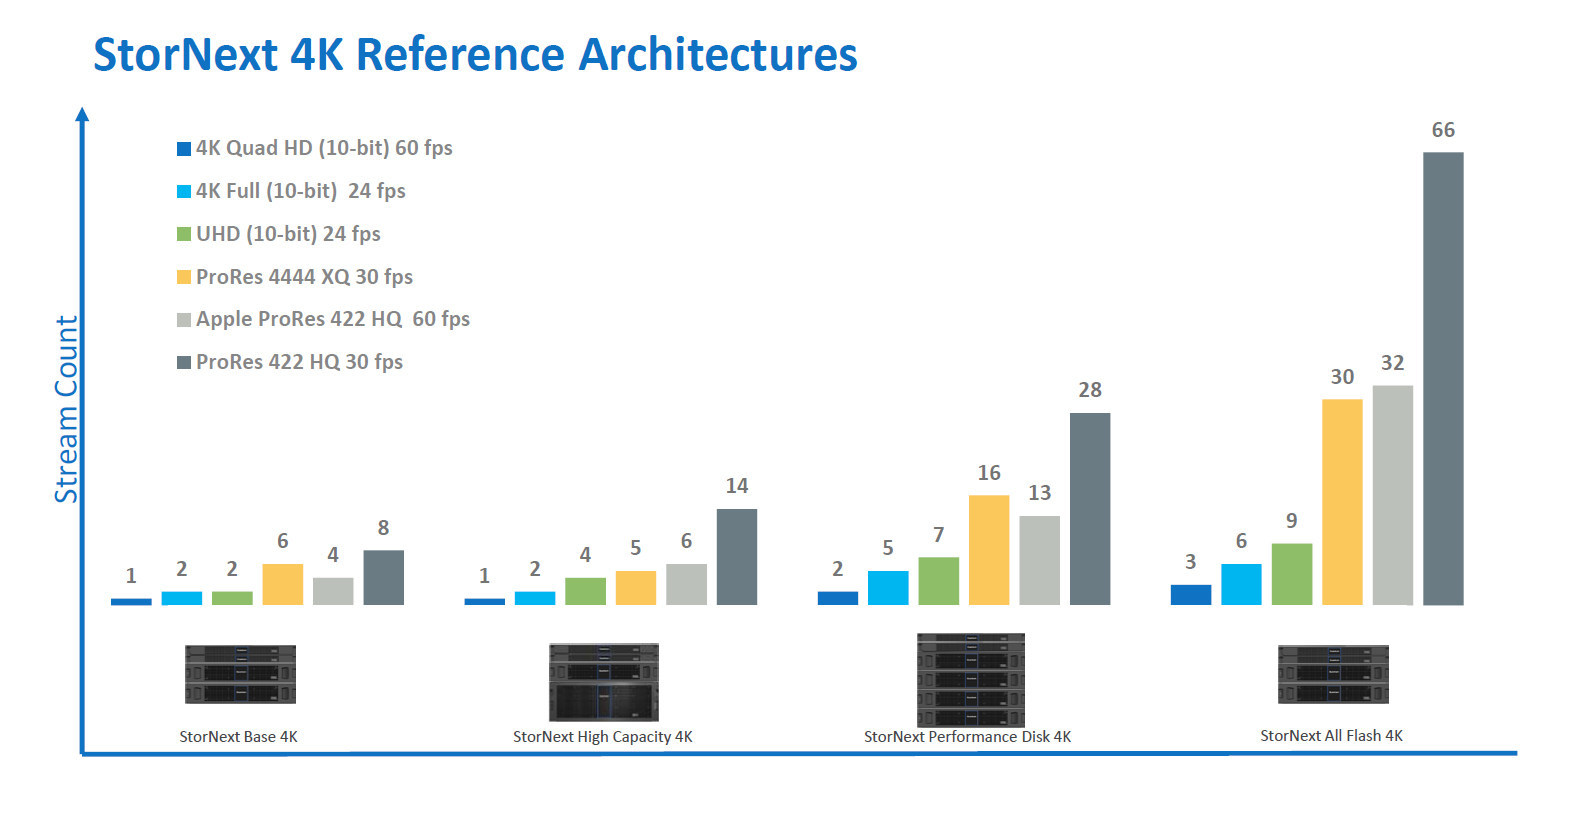 StorNext 4K Reference Architectures